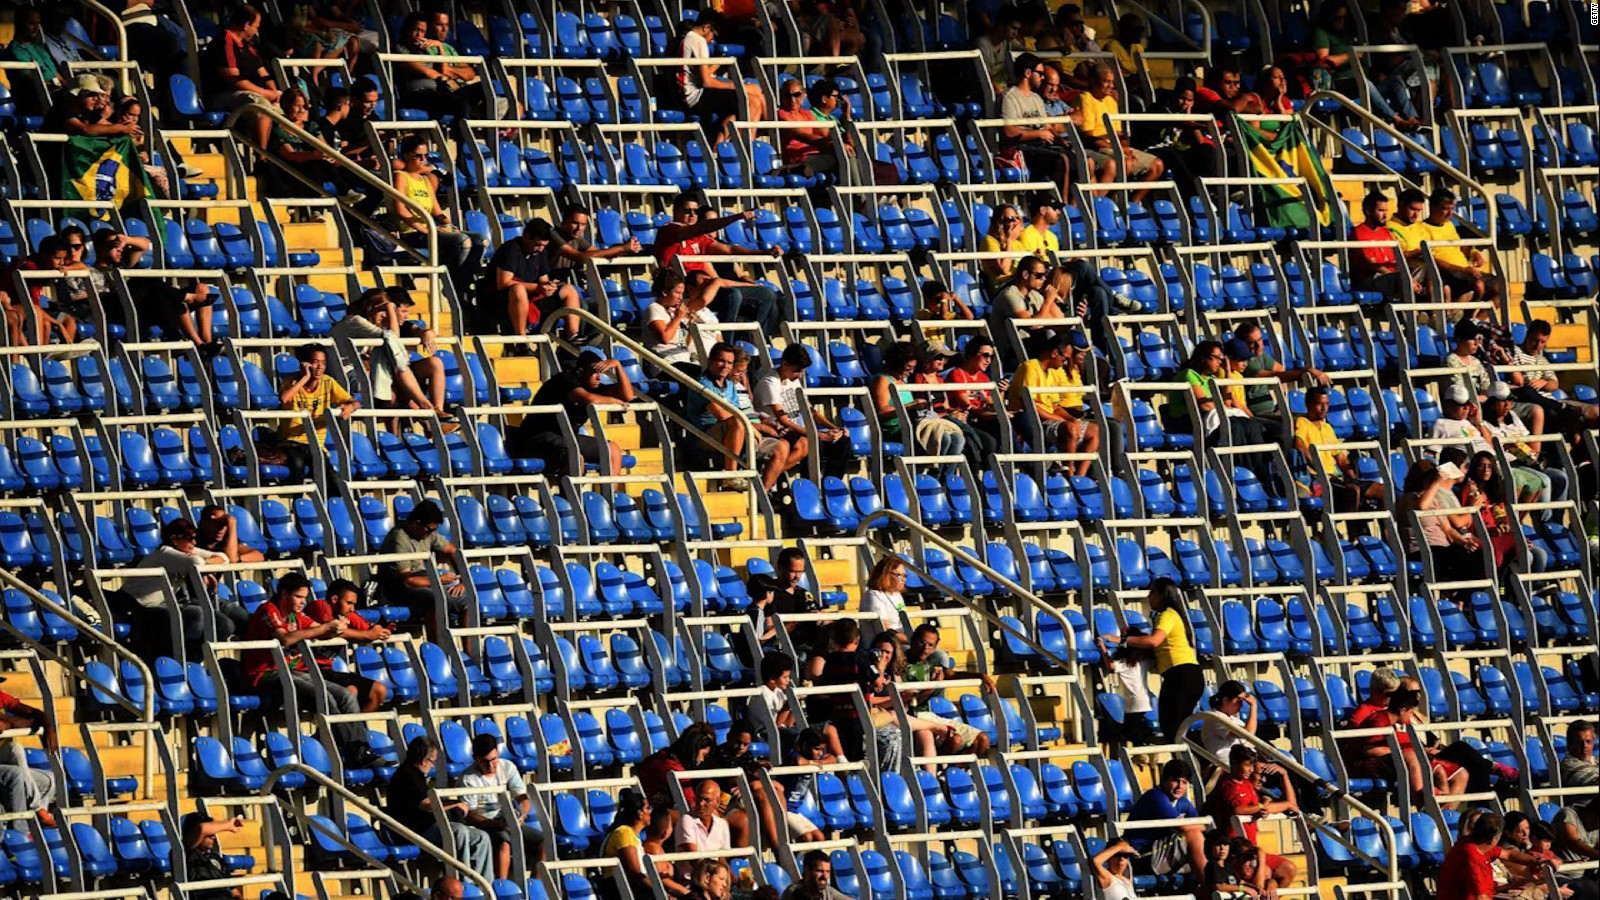 Rio Olympic Rio Olympics 2016 Why All The Empty Seats